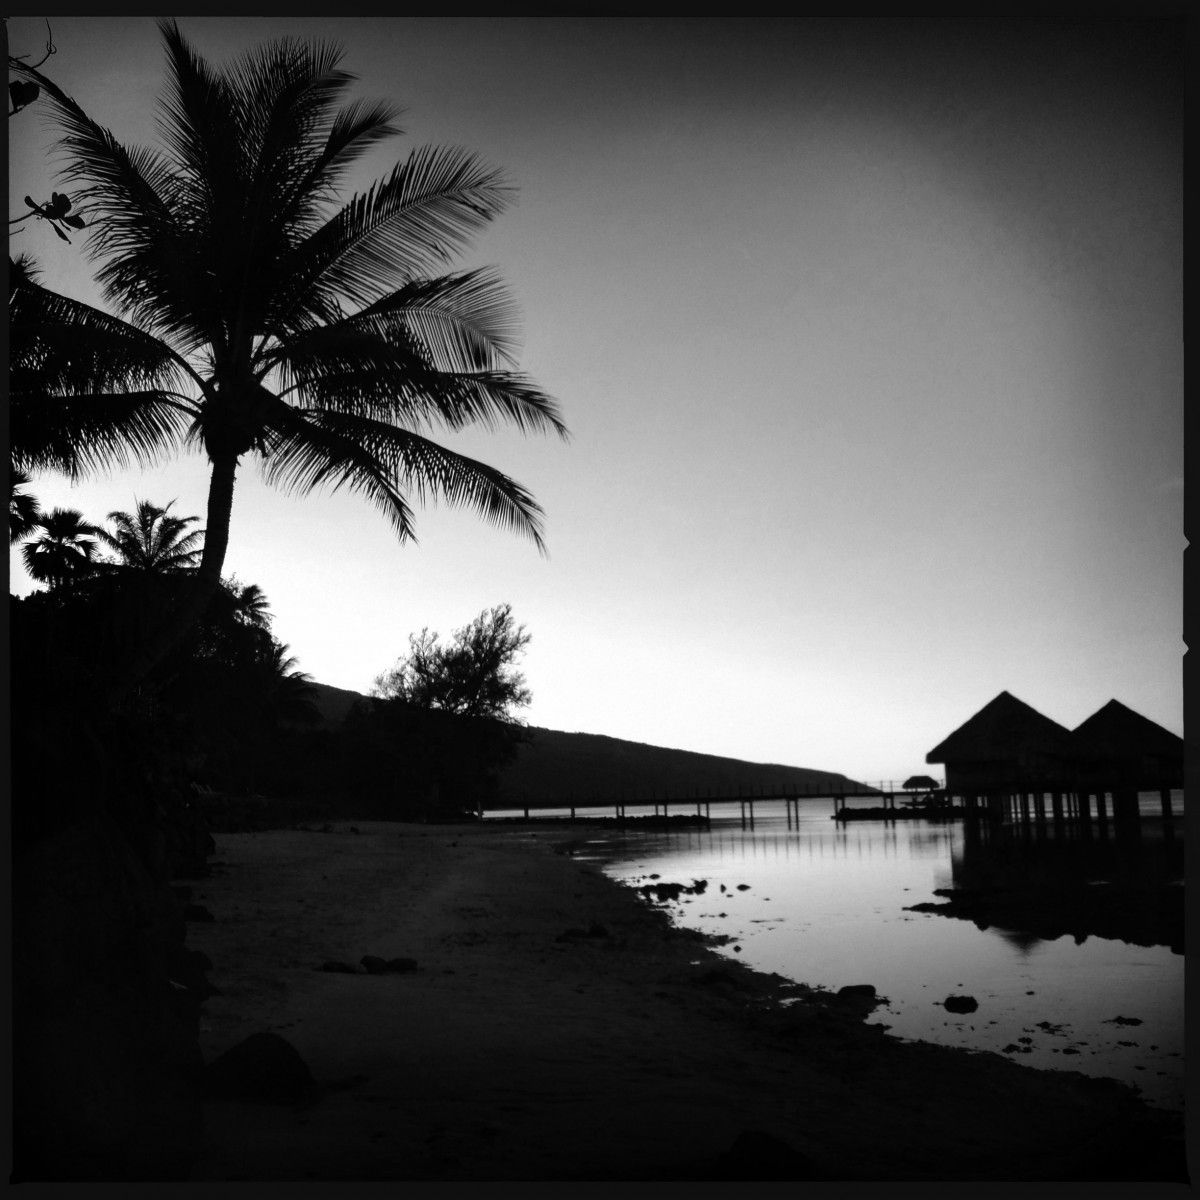 the beach a black white mobile photography photo essay of the beach a black white mobile photography photo essay of tahiti my life s